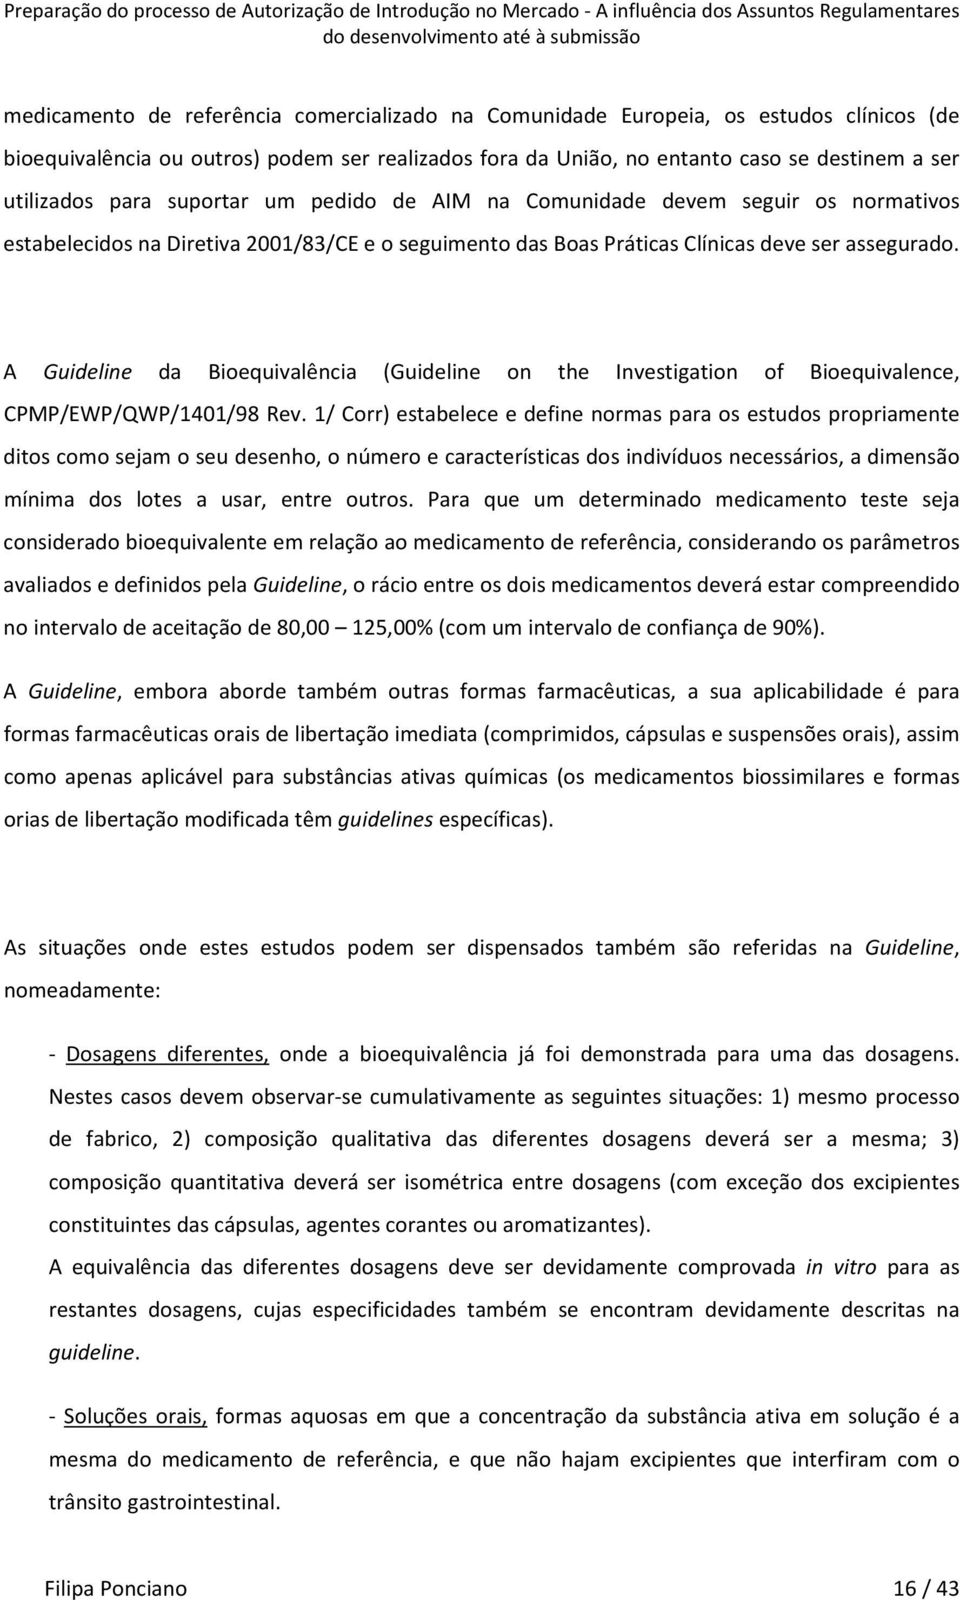 A Guideline da Bioequivalência (Guideline on the Investigation of Bioequivalence, CPMP/EWP/QWP/1401/98 Rev.